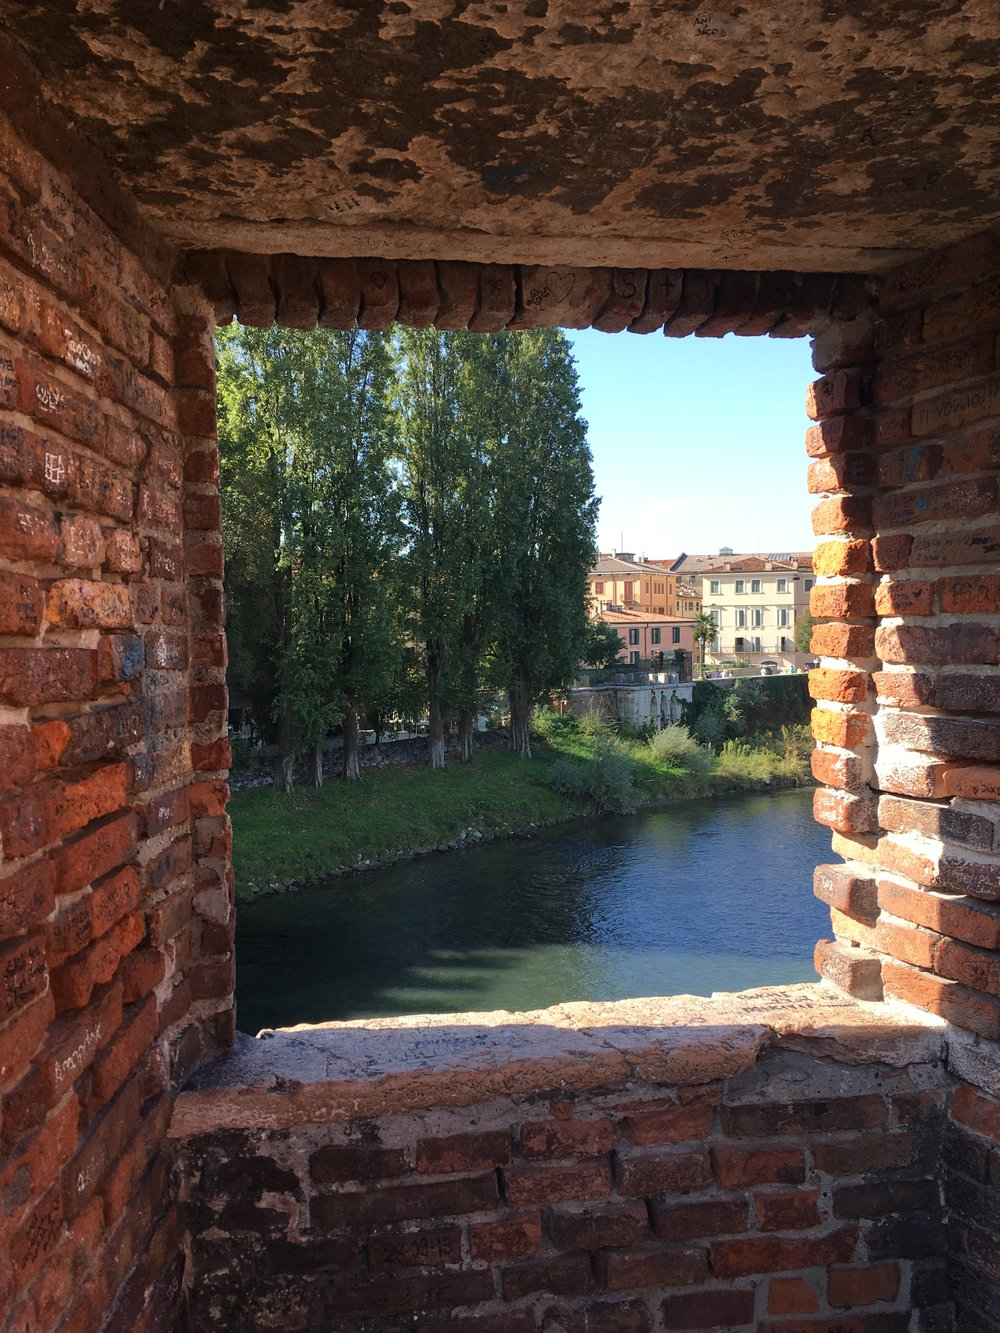 Verona, as seen from the Ponte Scaligero